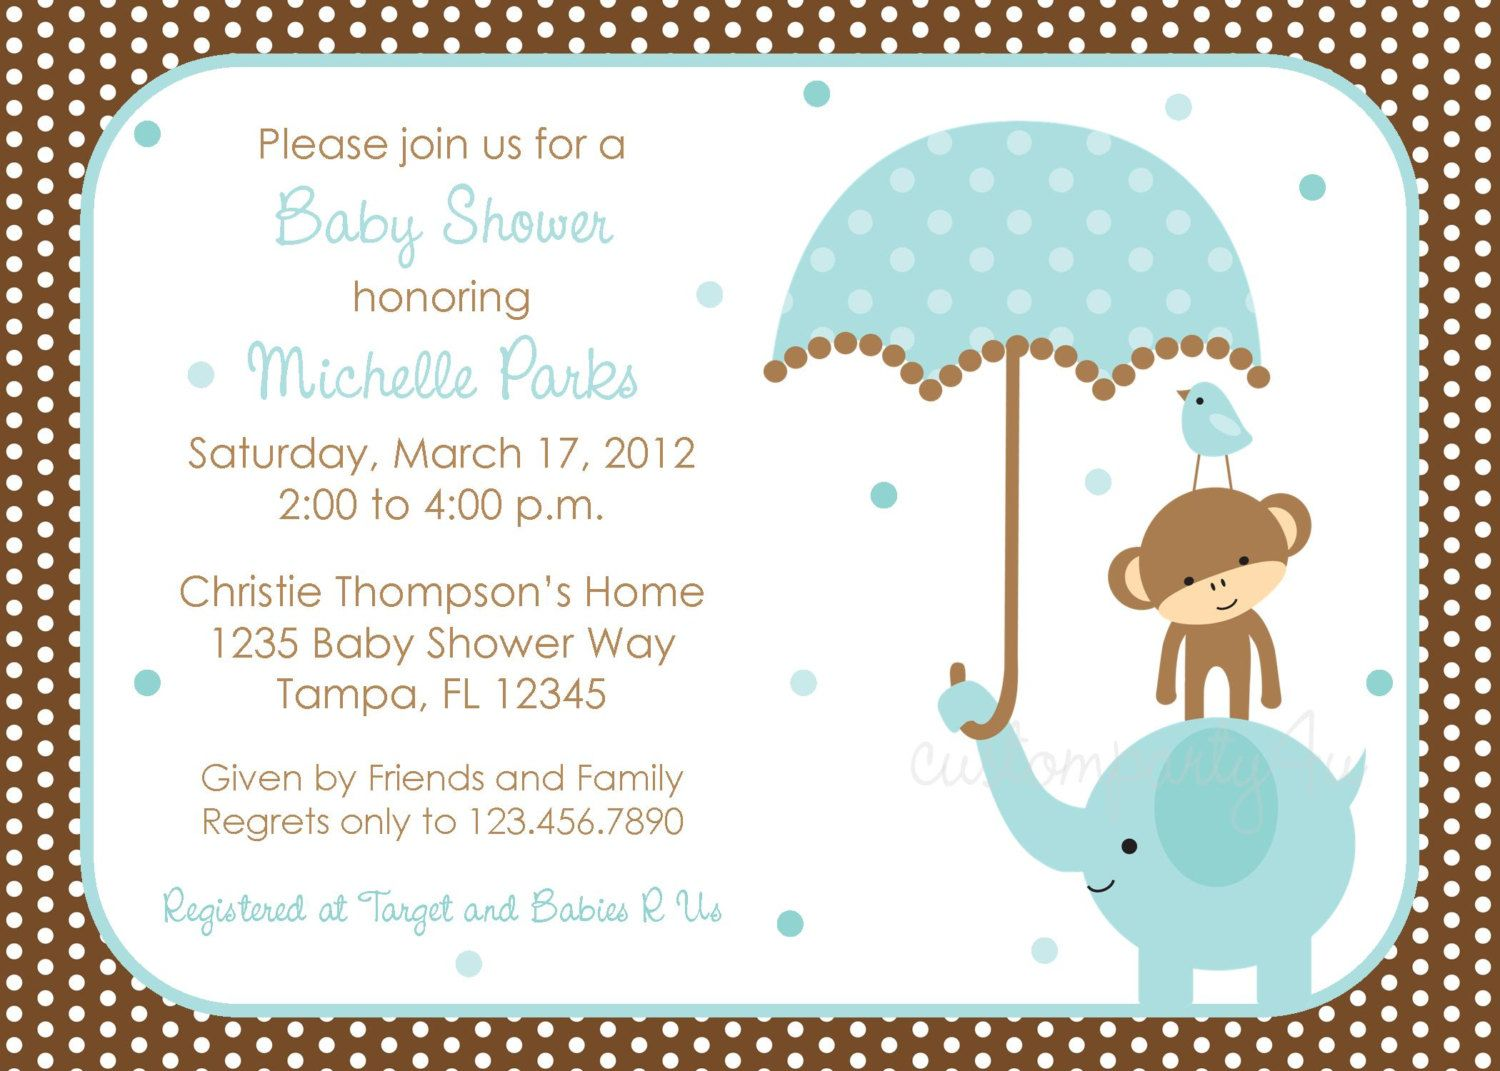 baby shower archives - cloudinvitation | me | pinterest | best, Baby shower invitations